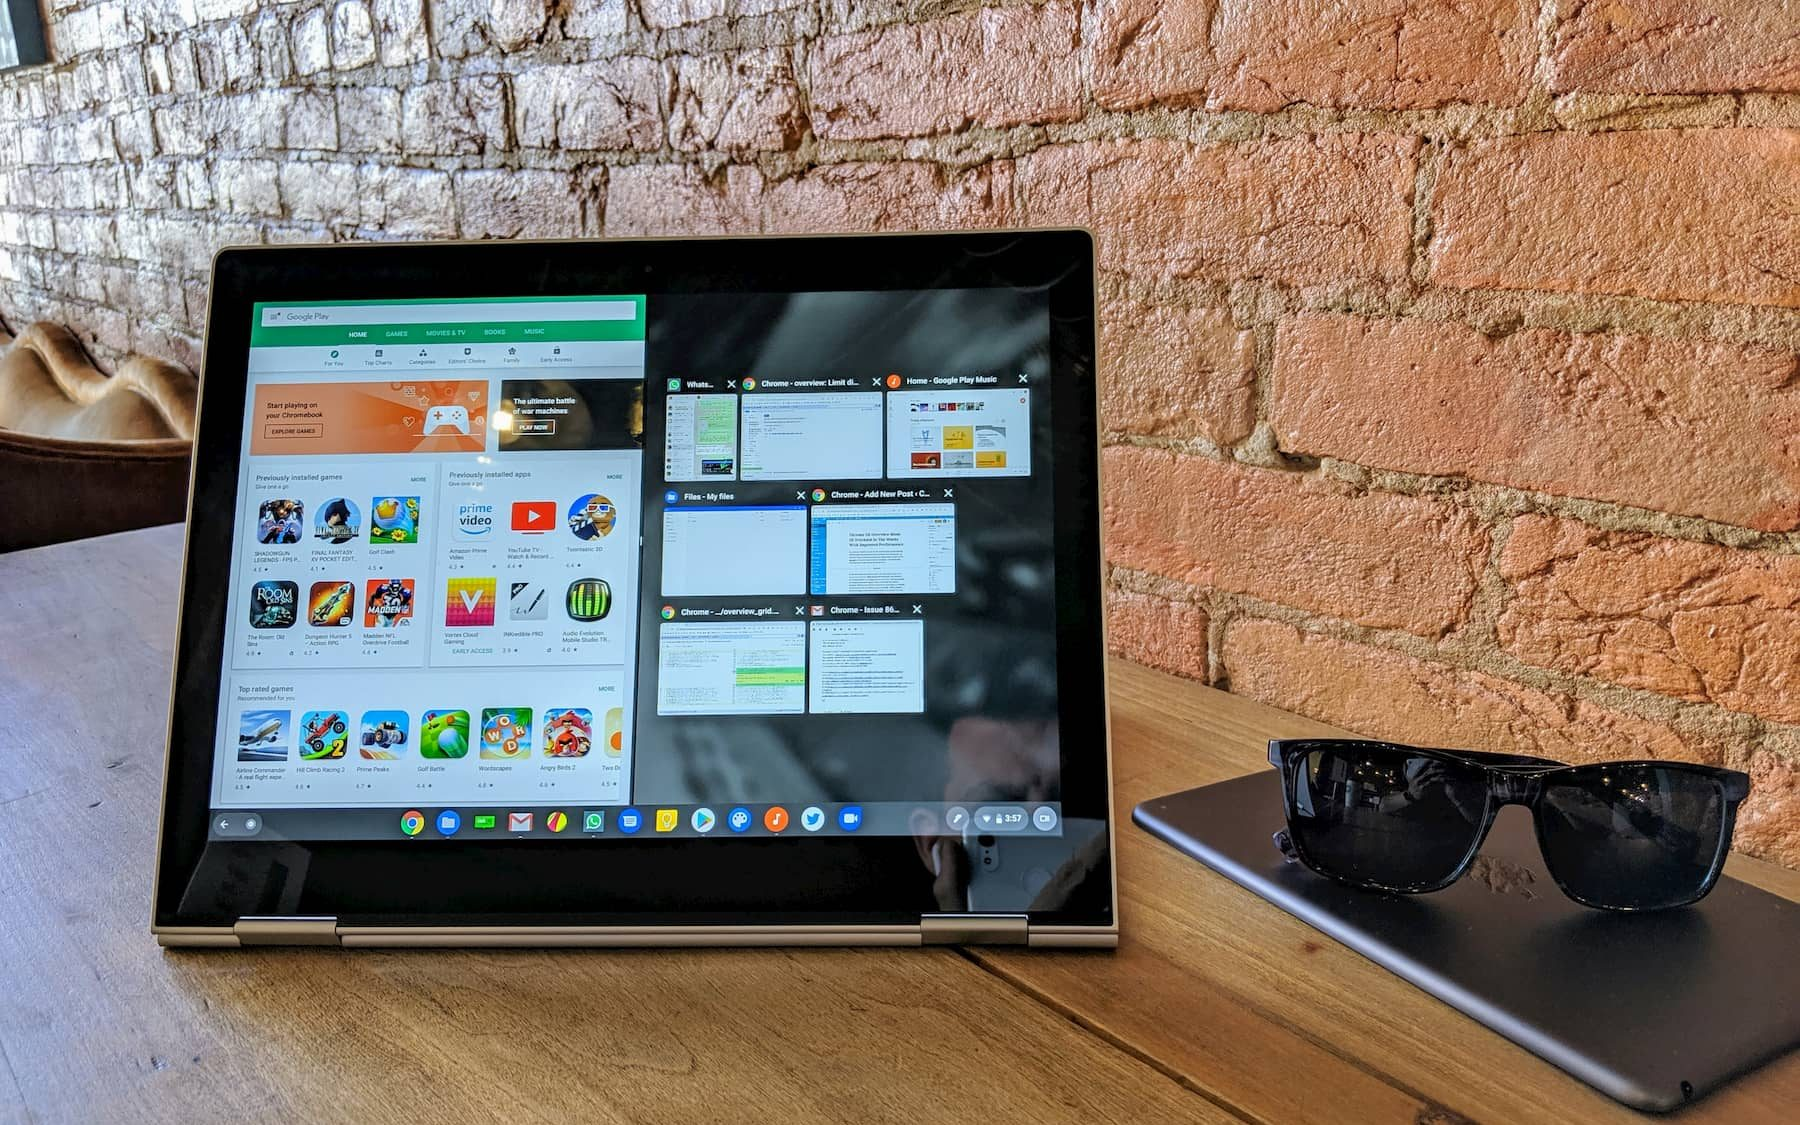 Chrome OS Overview Mode UI Overhaul In The Works